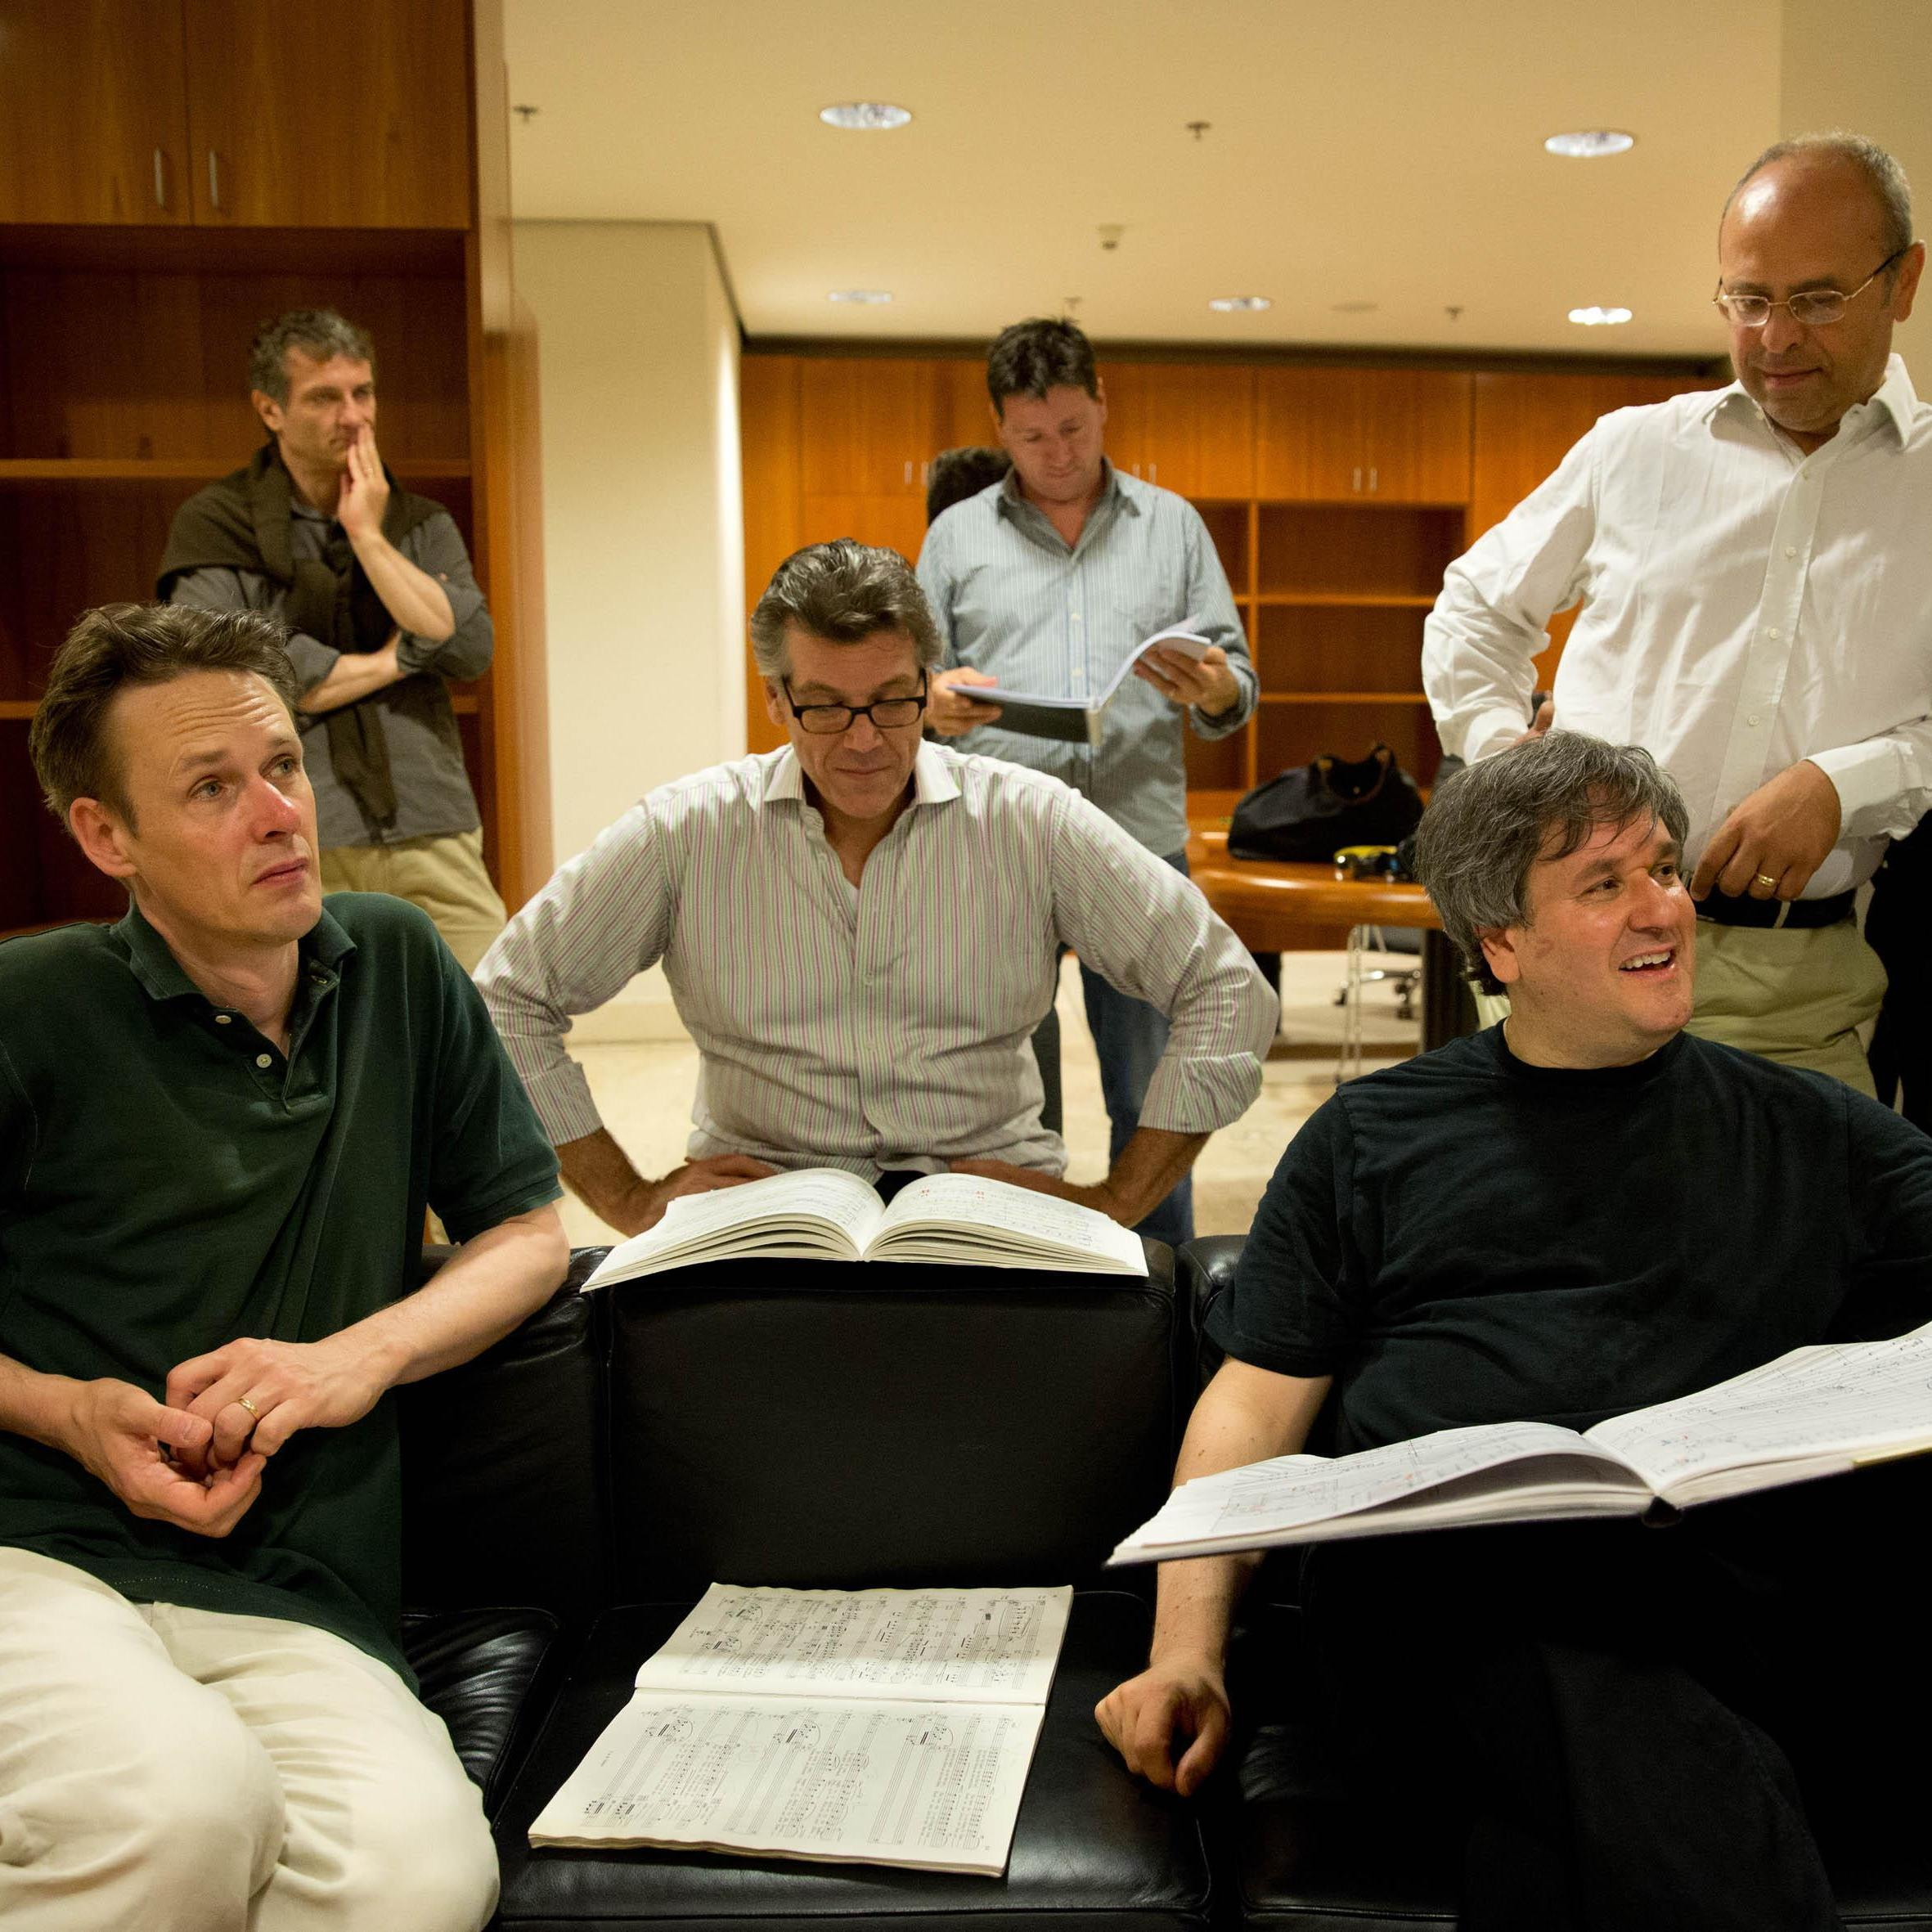 Soloists Ian Bostridge and Thomas Hampson (front left) with conductor Antonio Pappano (front right) and recording engineers (back).